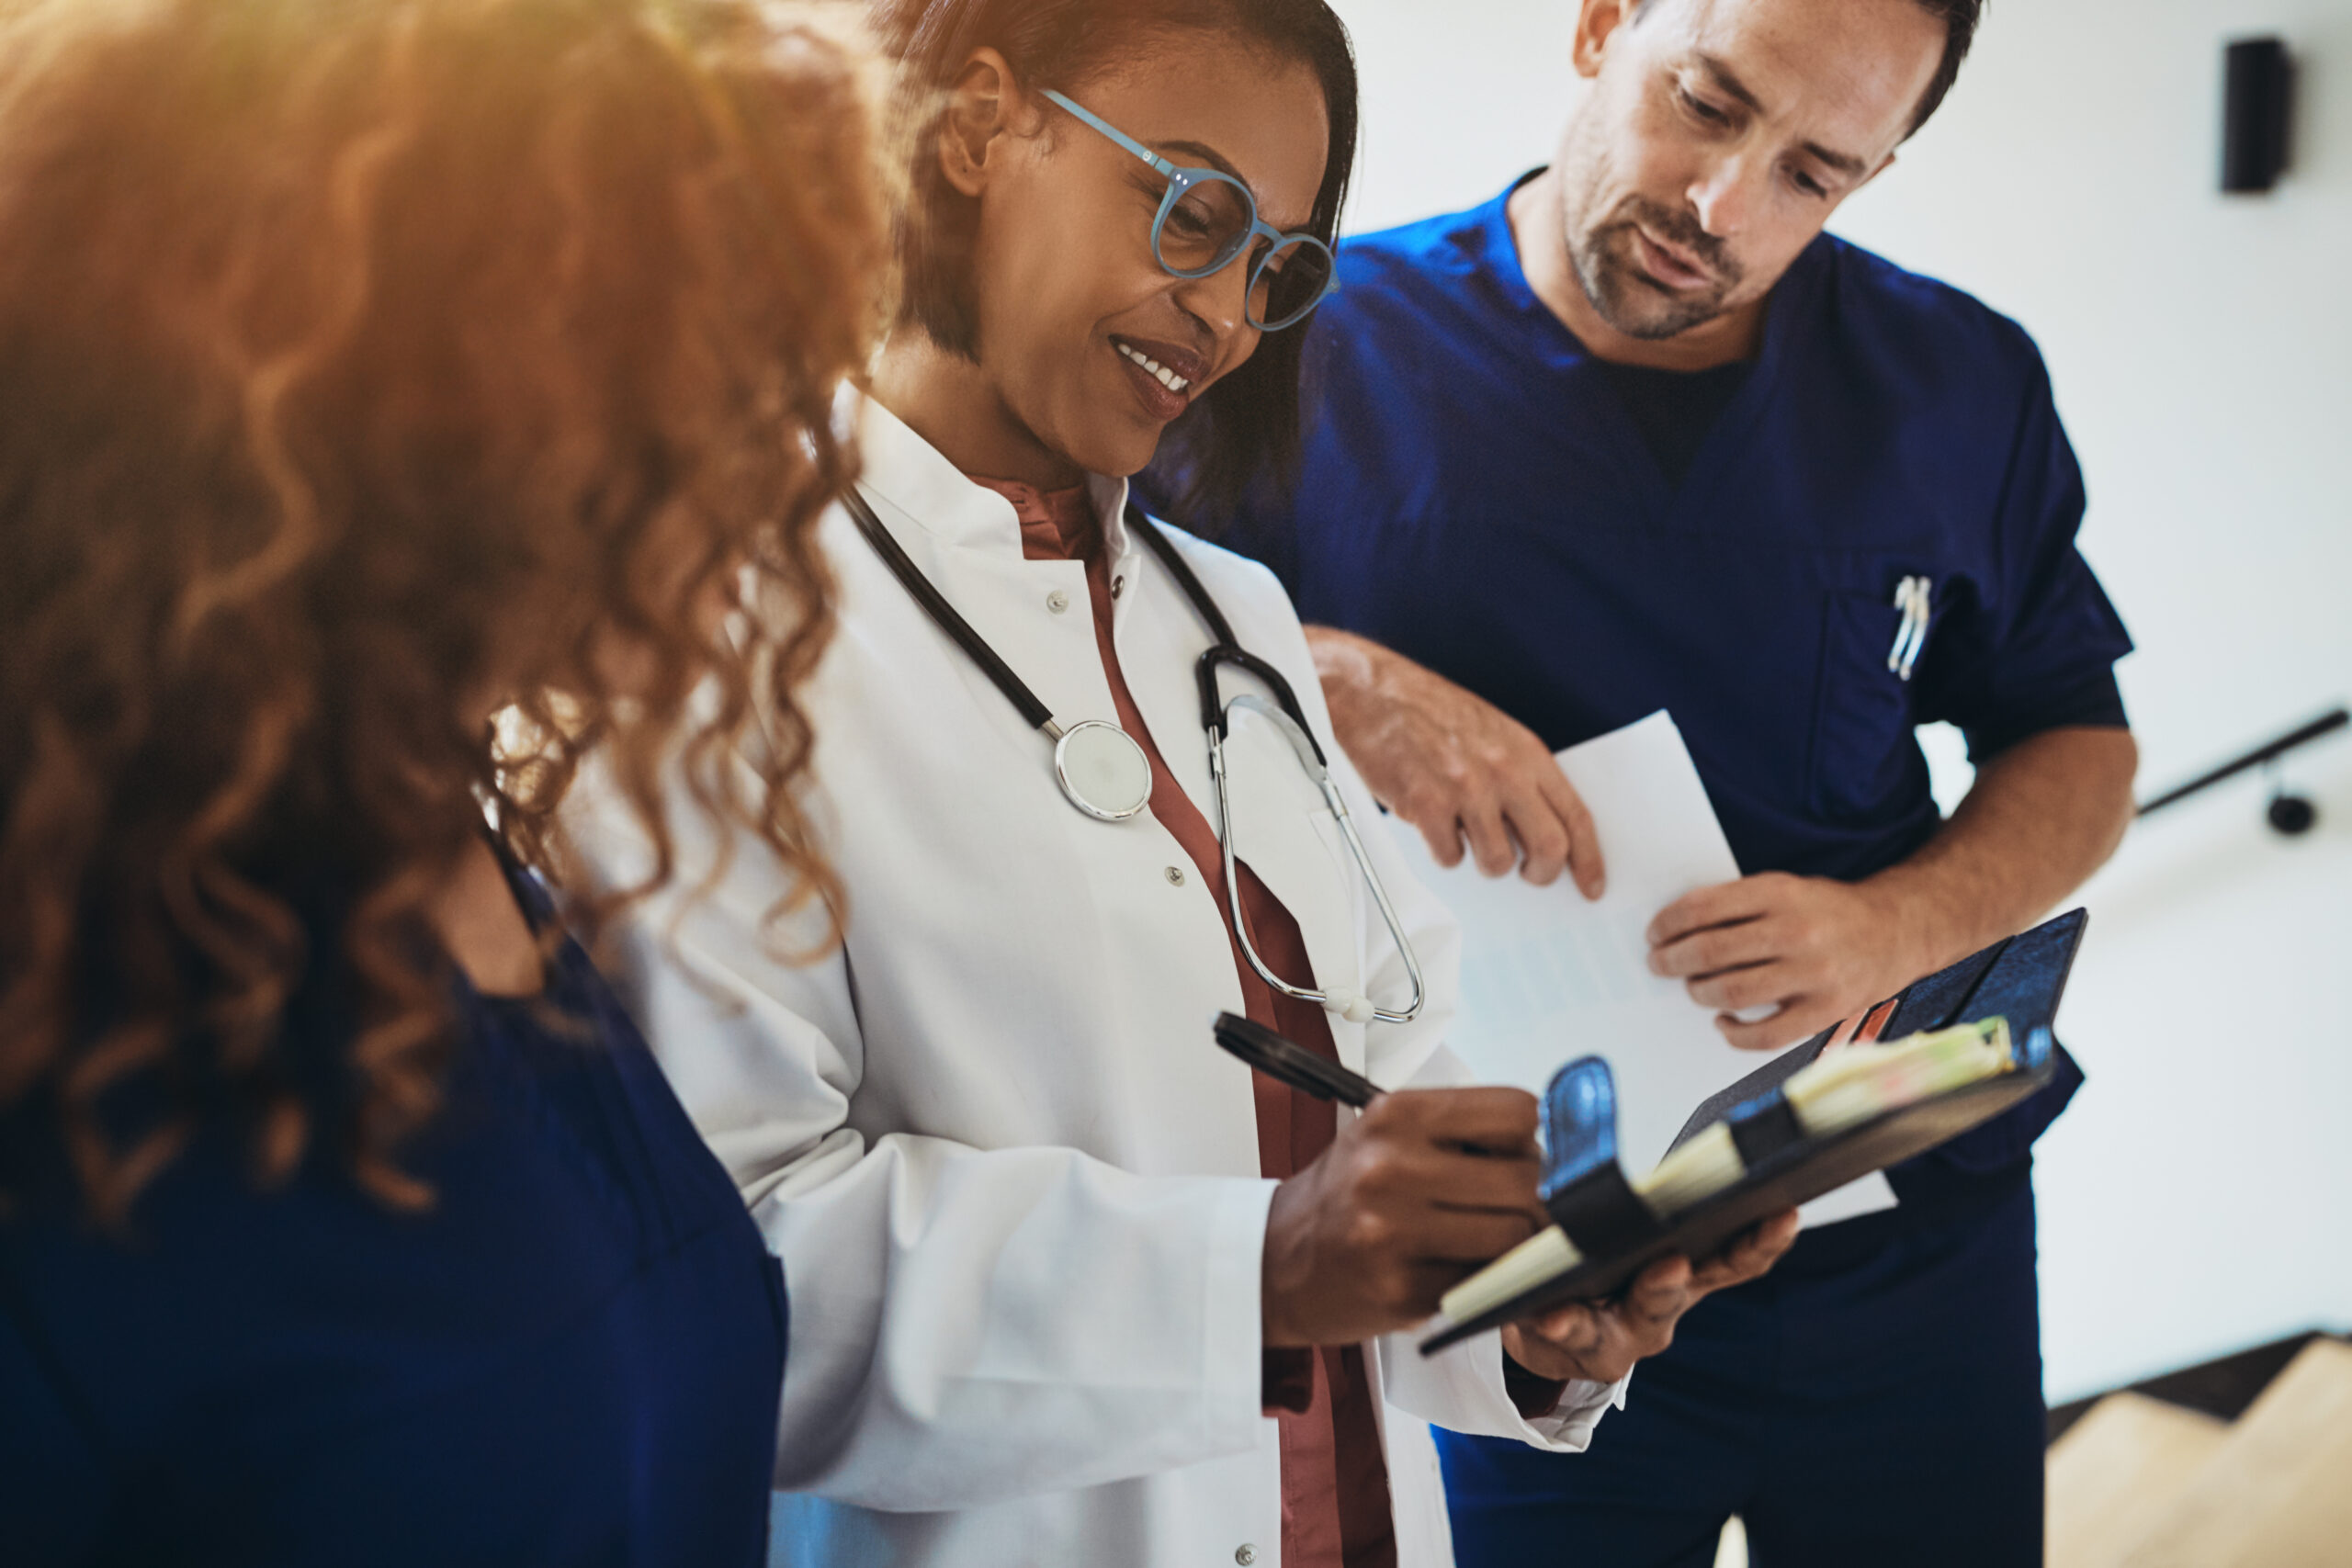 Leadership Development to Advance Equity in Health Care